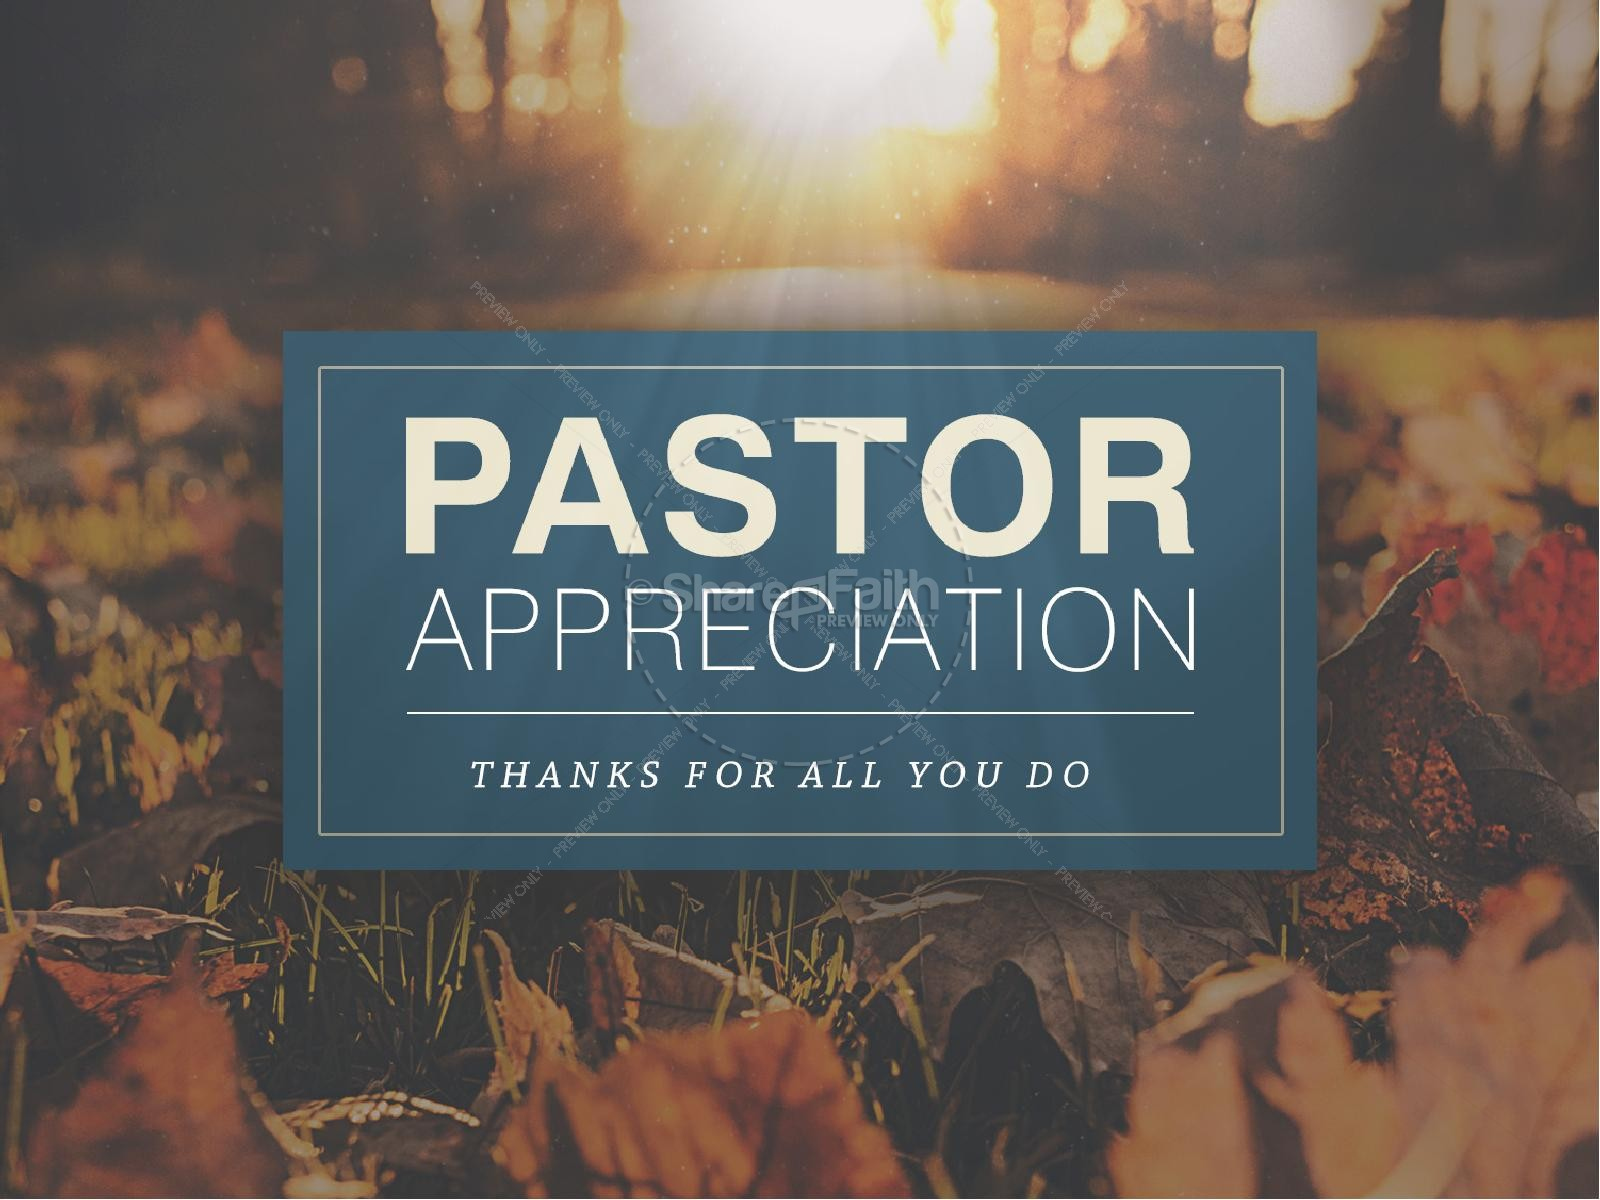 Pastor Appreciation Church PowerPoint